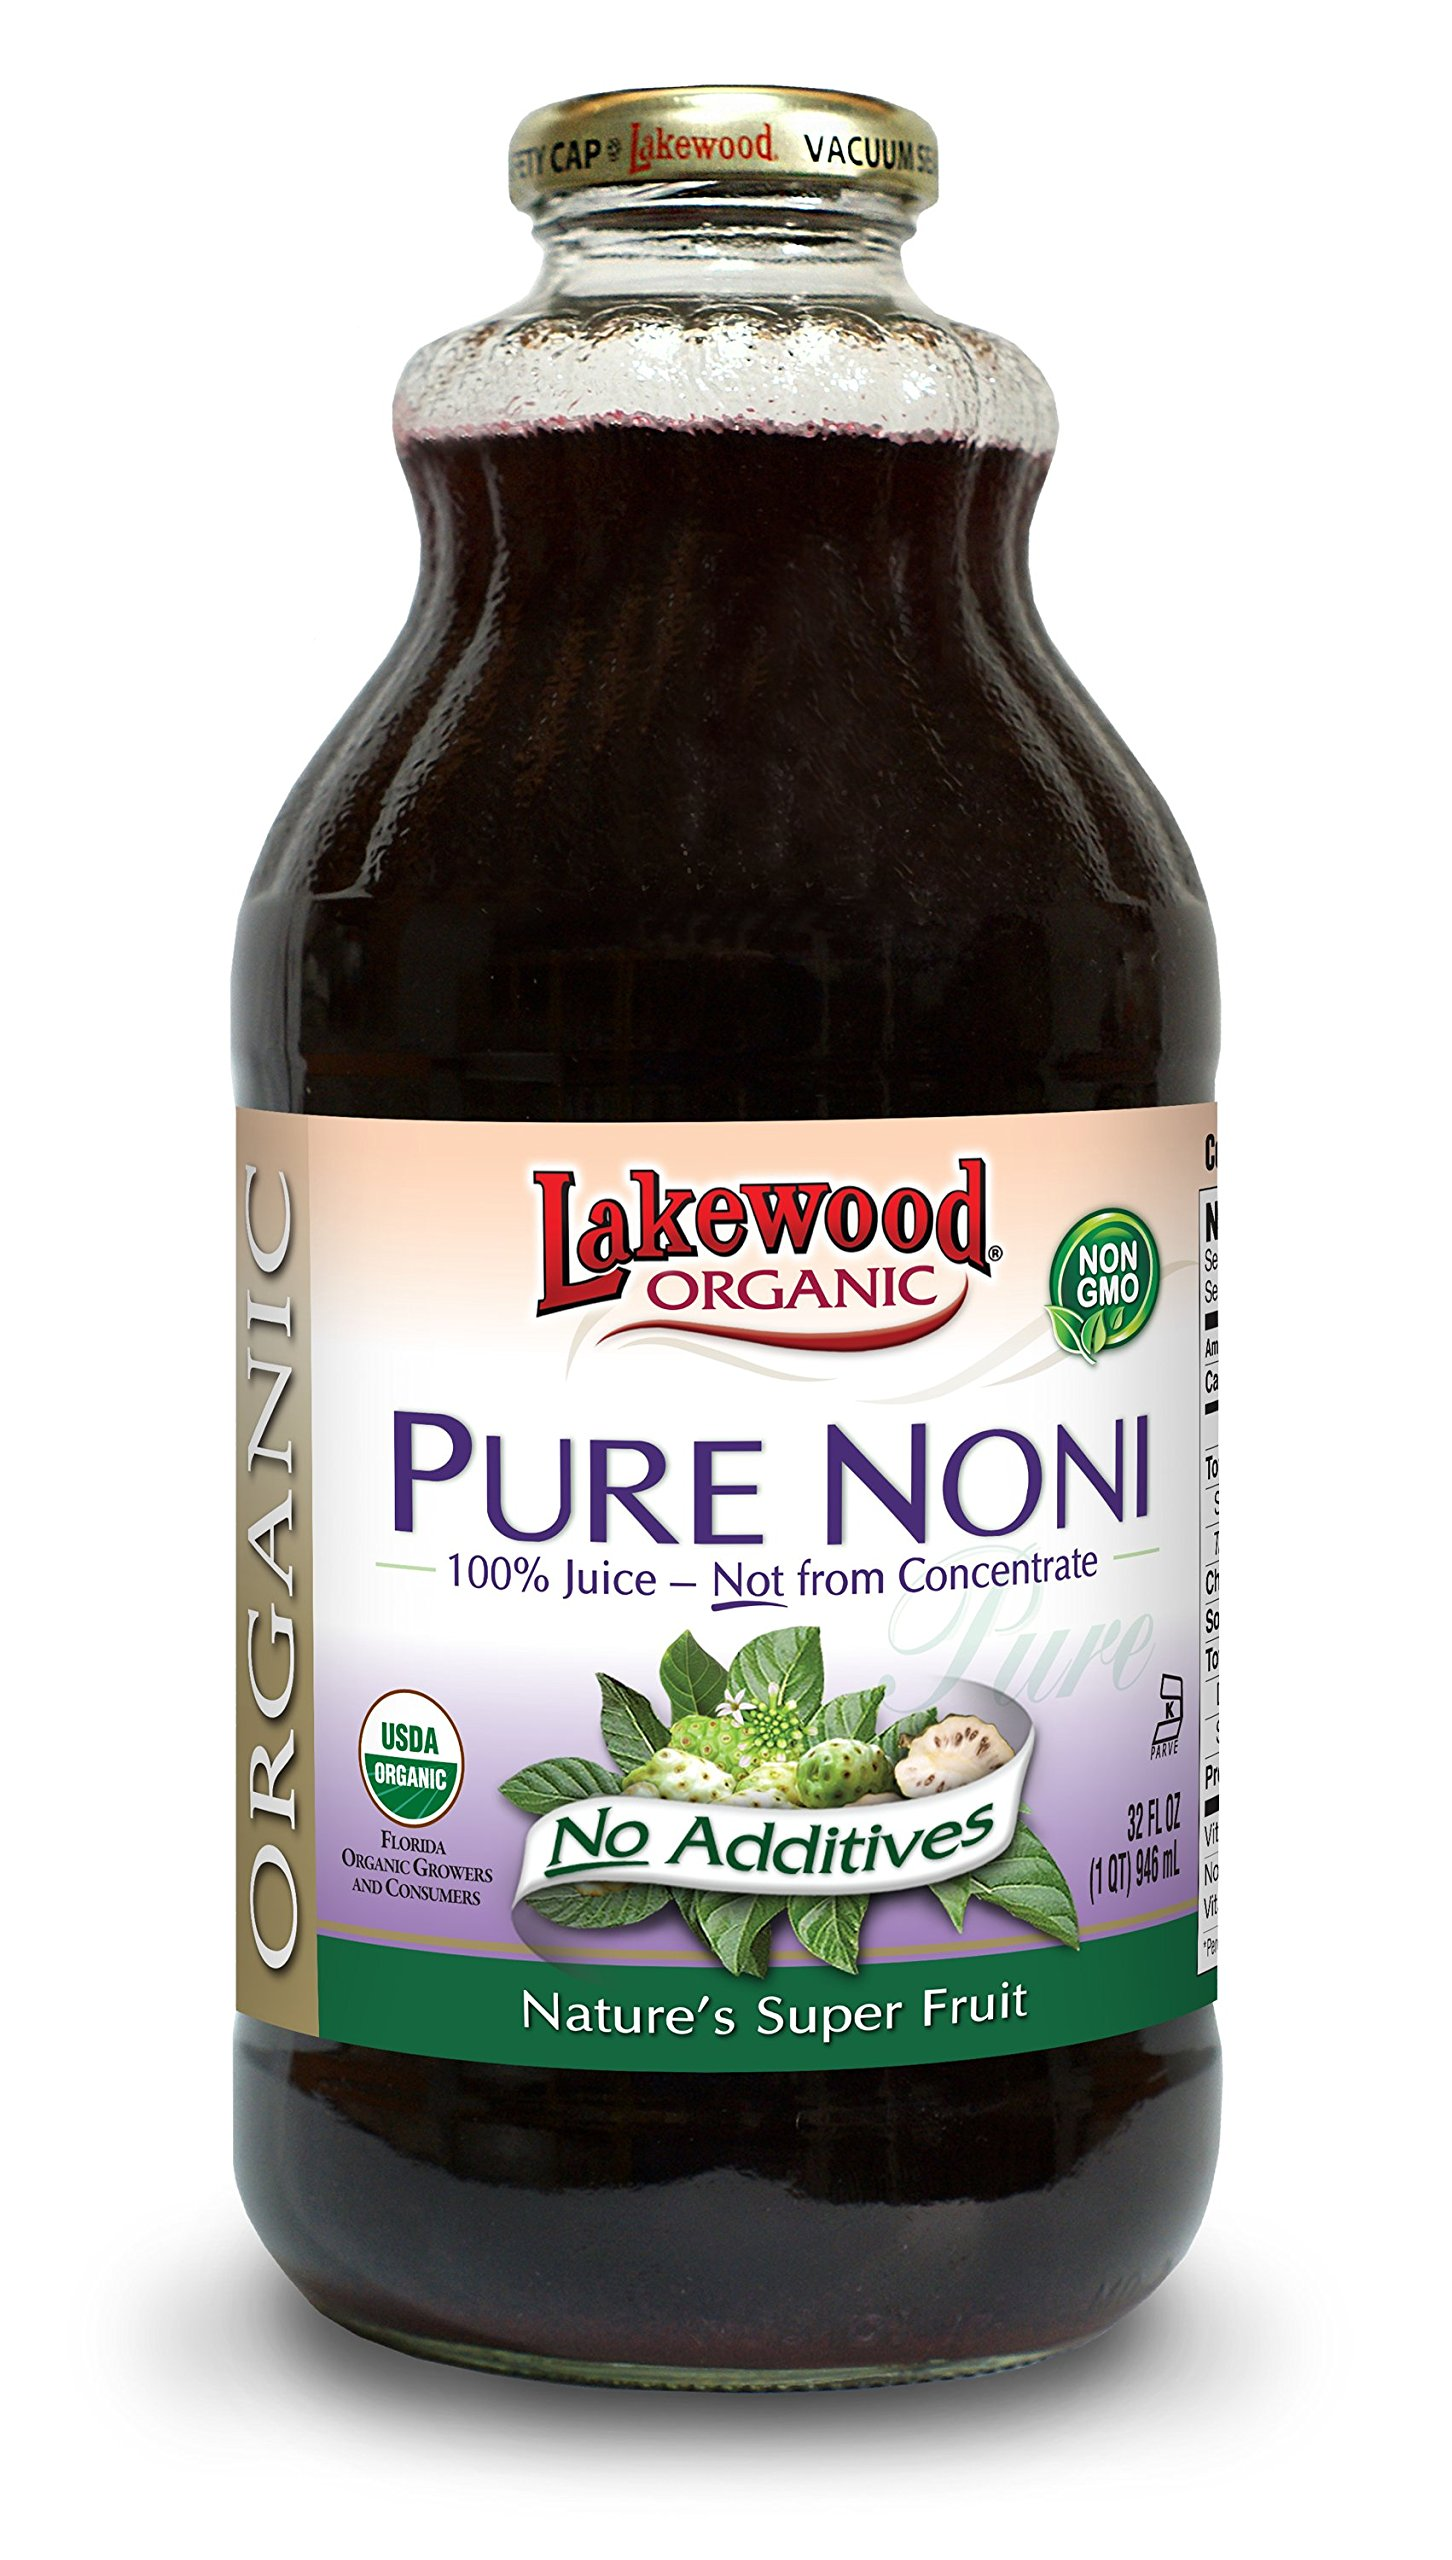 Lakewood Organic PURE Noni Juice, 32-Ounce Bottles (Pack of 6) by Lakewood